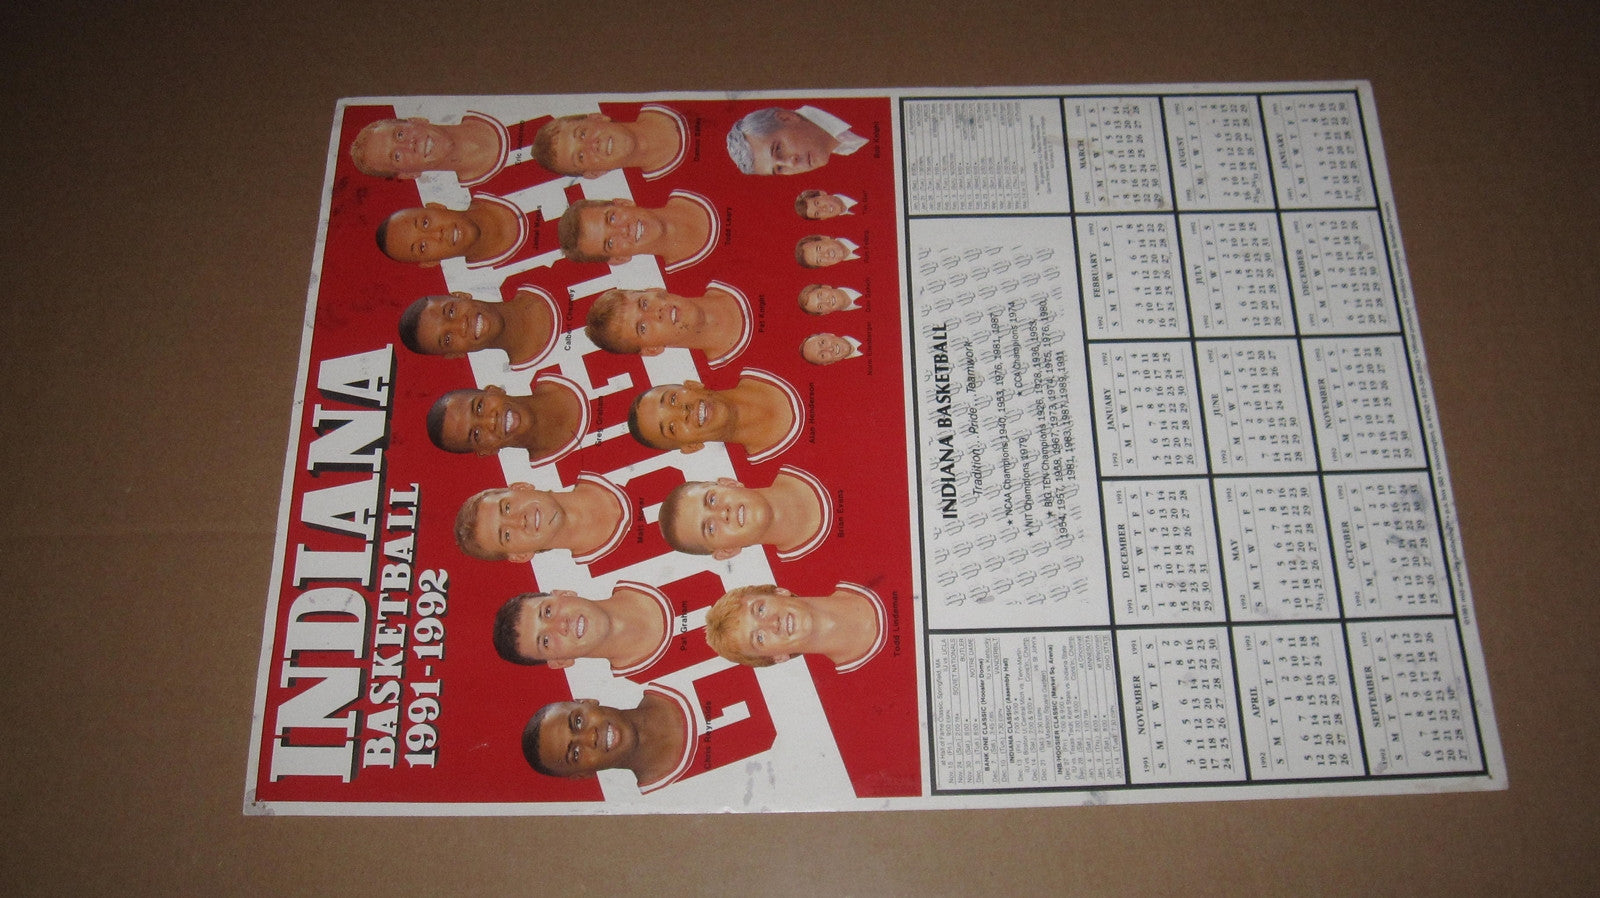 1991-92 Indiana University Basketball Schedule Poster, 11x17 - Vintage Indy Sports